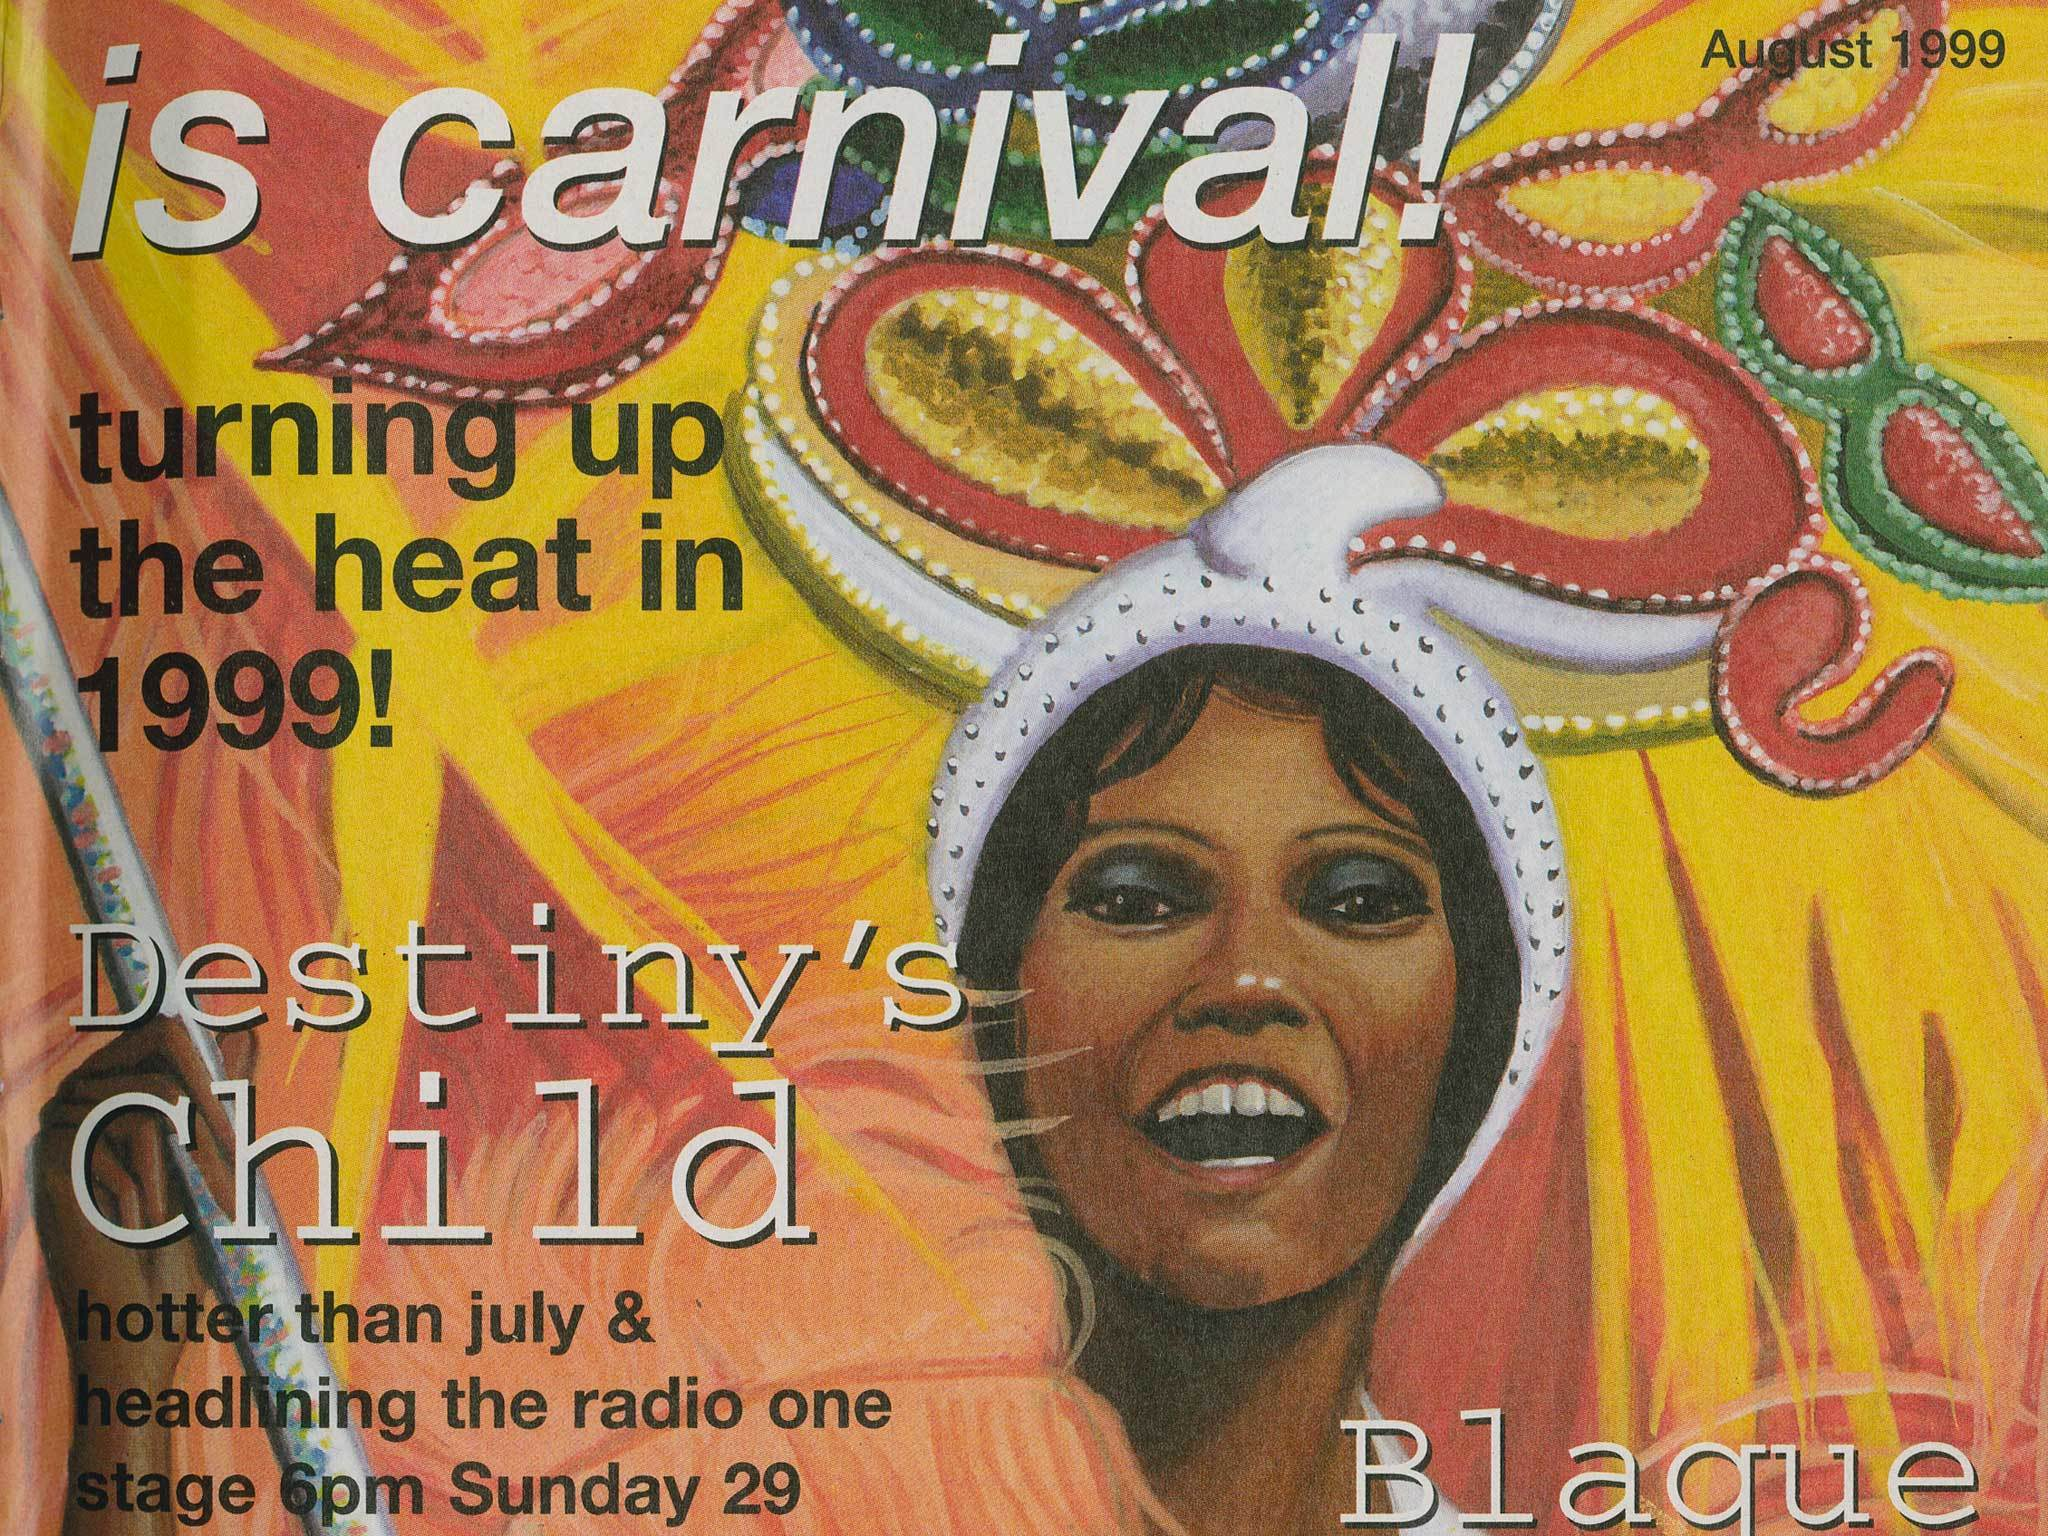 1999 front cover